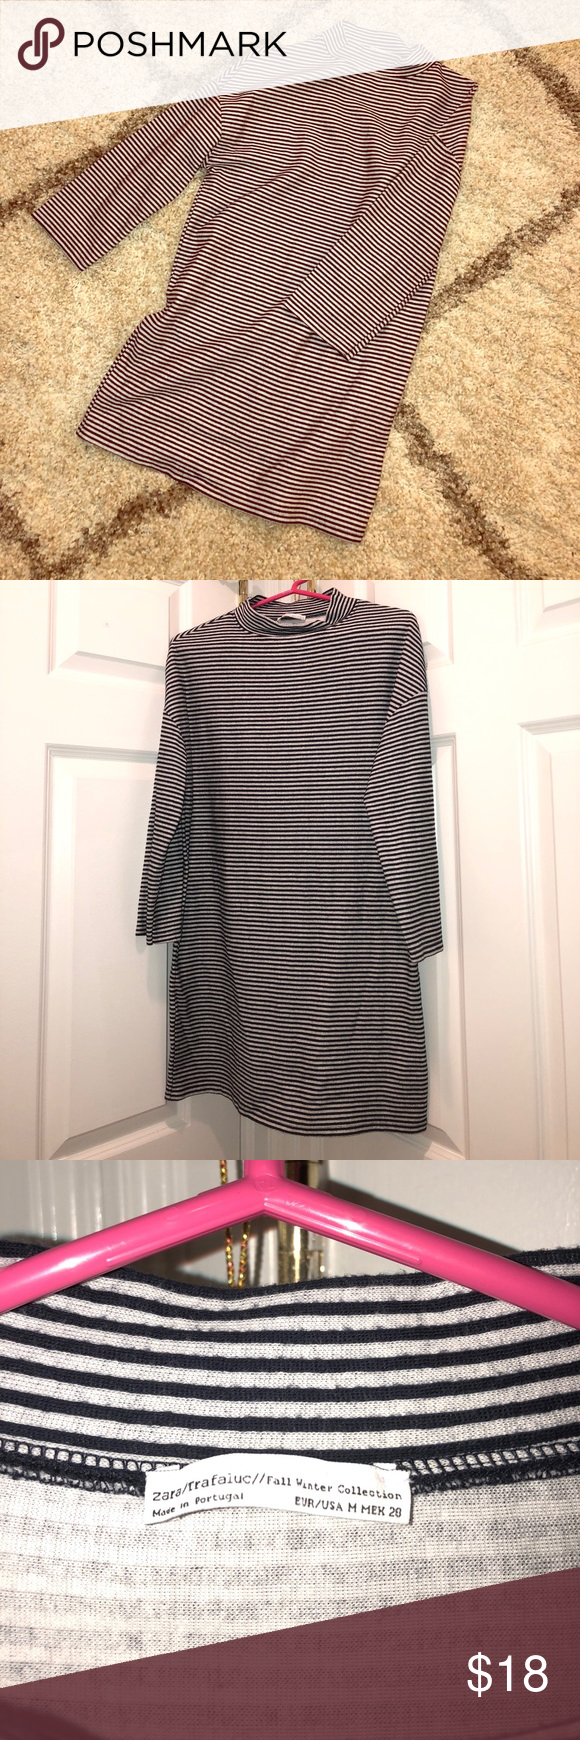 d4cff4001a06 Zara Tunic This Medium Zara Tunic Dress was part of their Fall Winter  collection and